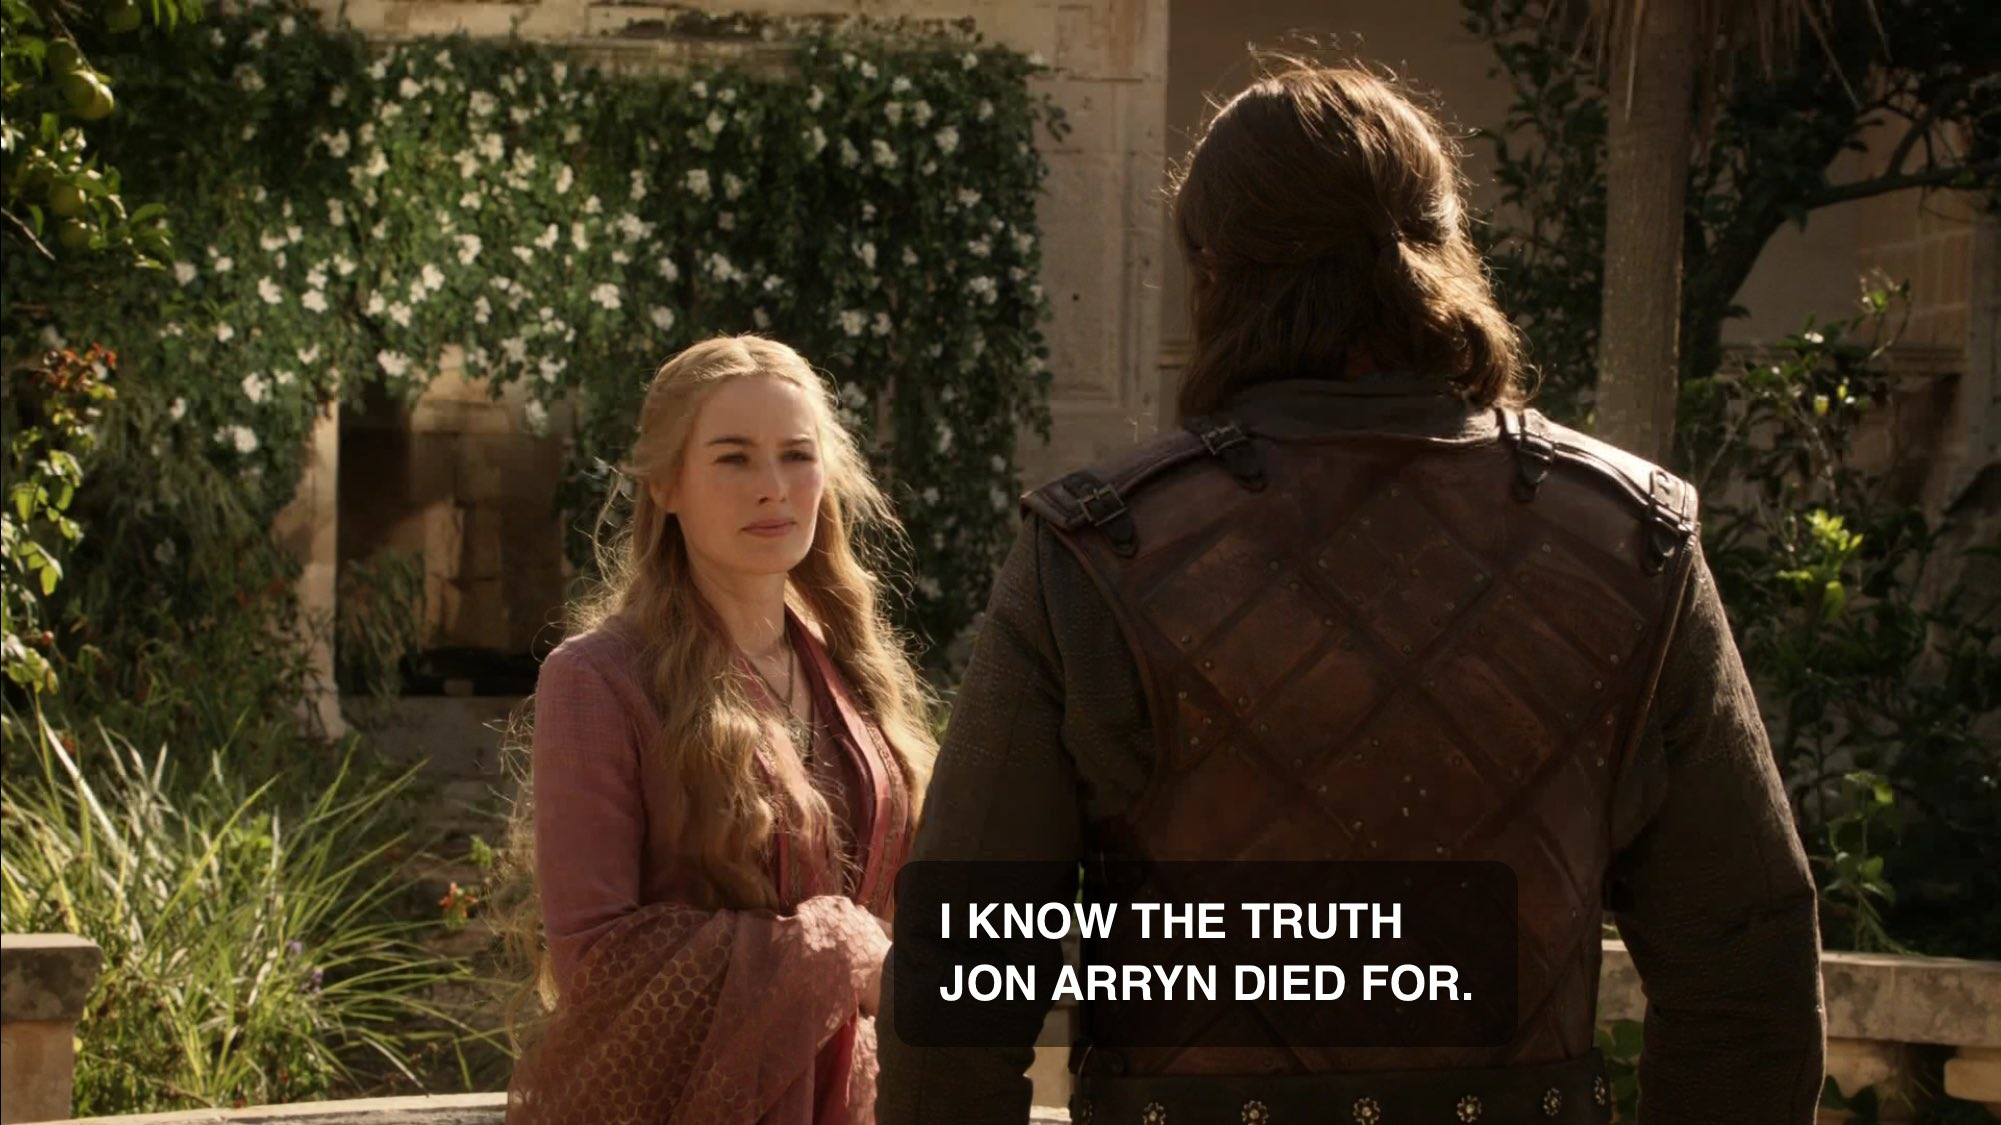 Cersei enters the situation playing at the game, but Ned cuts her off by slapping down the truth. https://t.co/QJqfWgLJSM